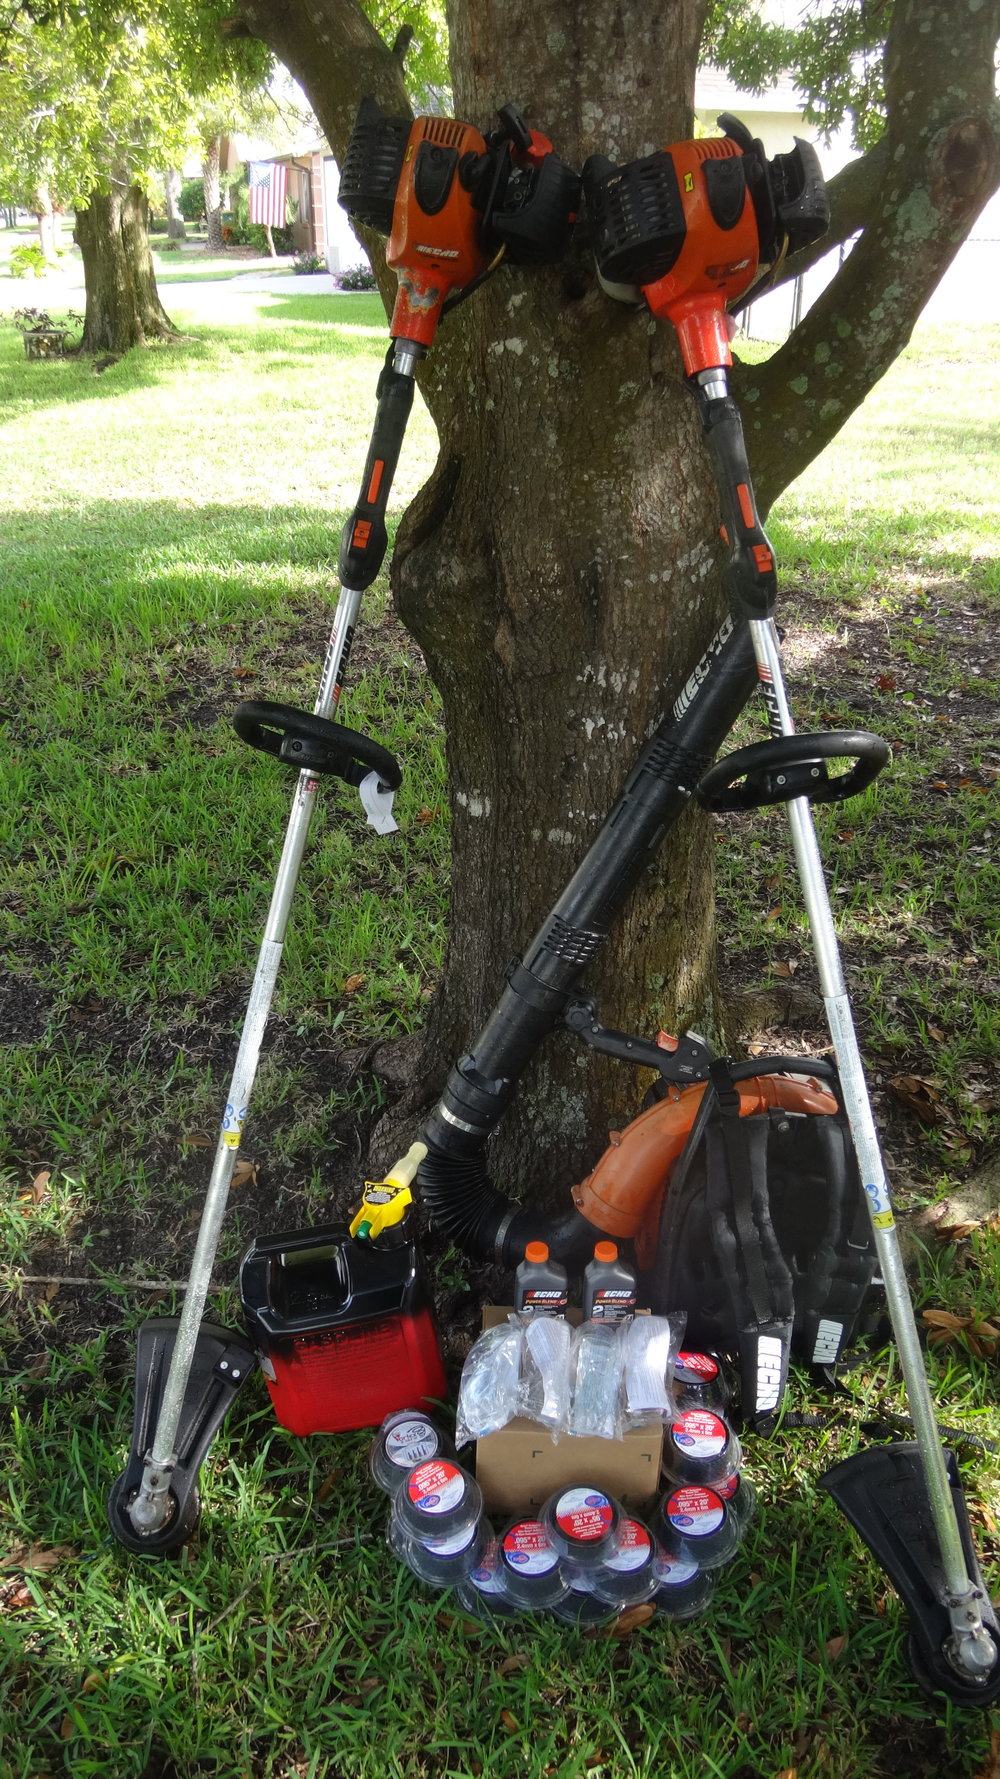 Pro Yard Tools - Two professional weed eaters, and a backpack blower.   Also a gas can, oil, eye protection, and a lifetime supply of trimmer line.